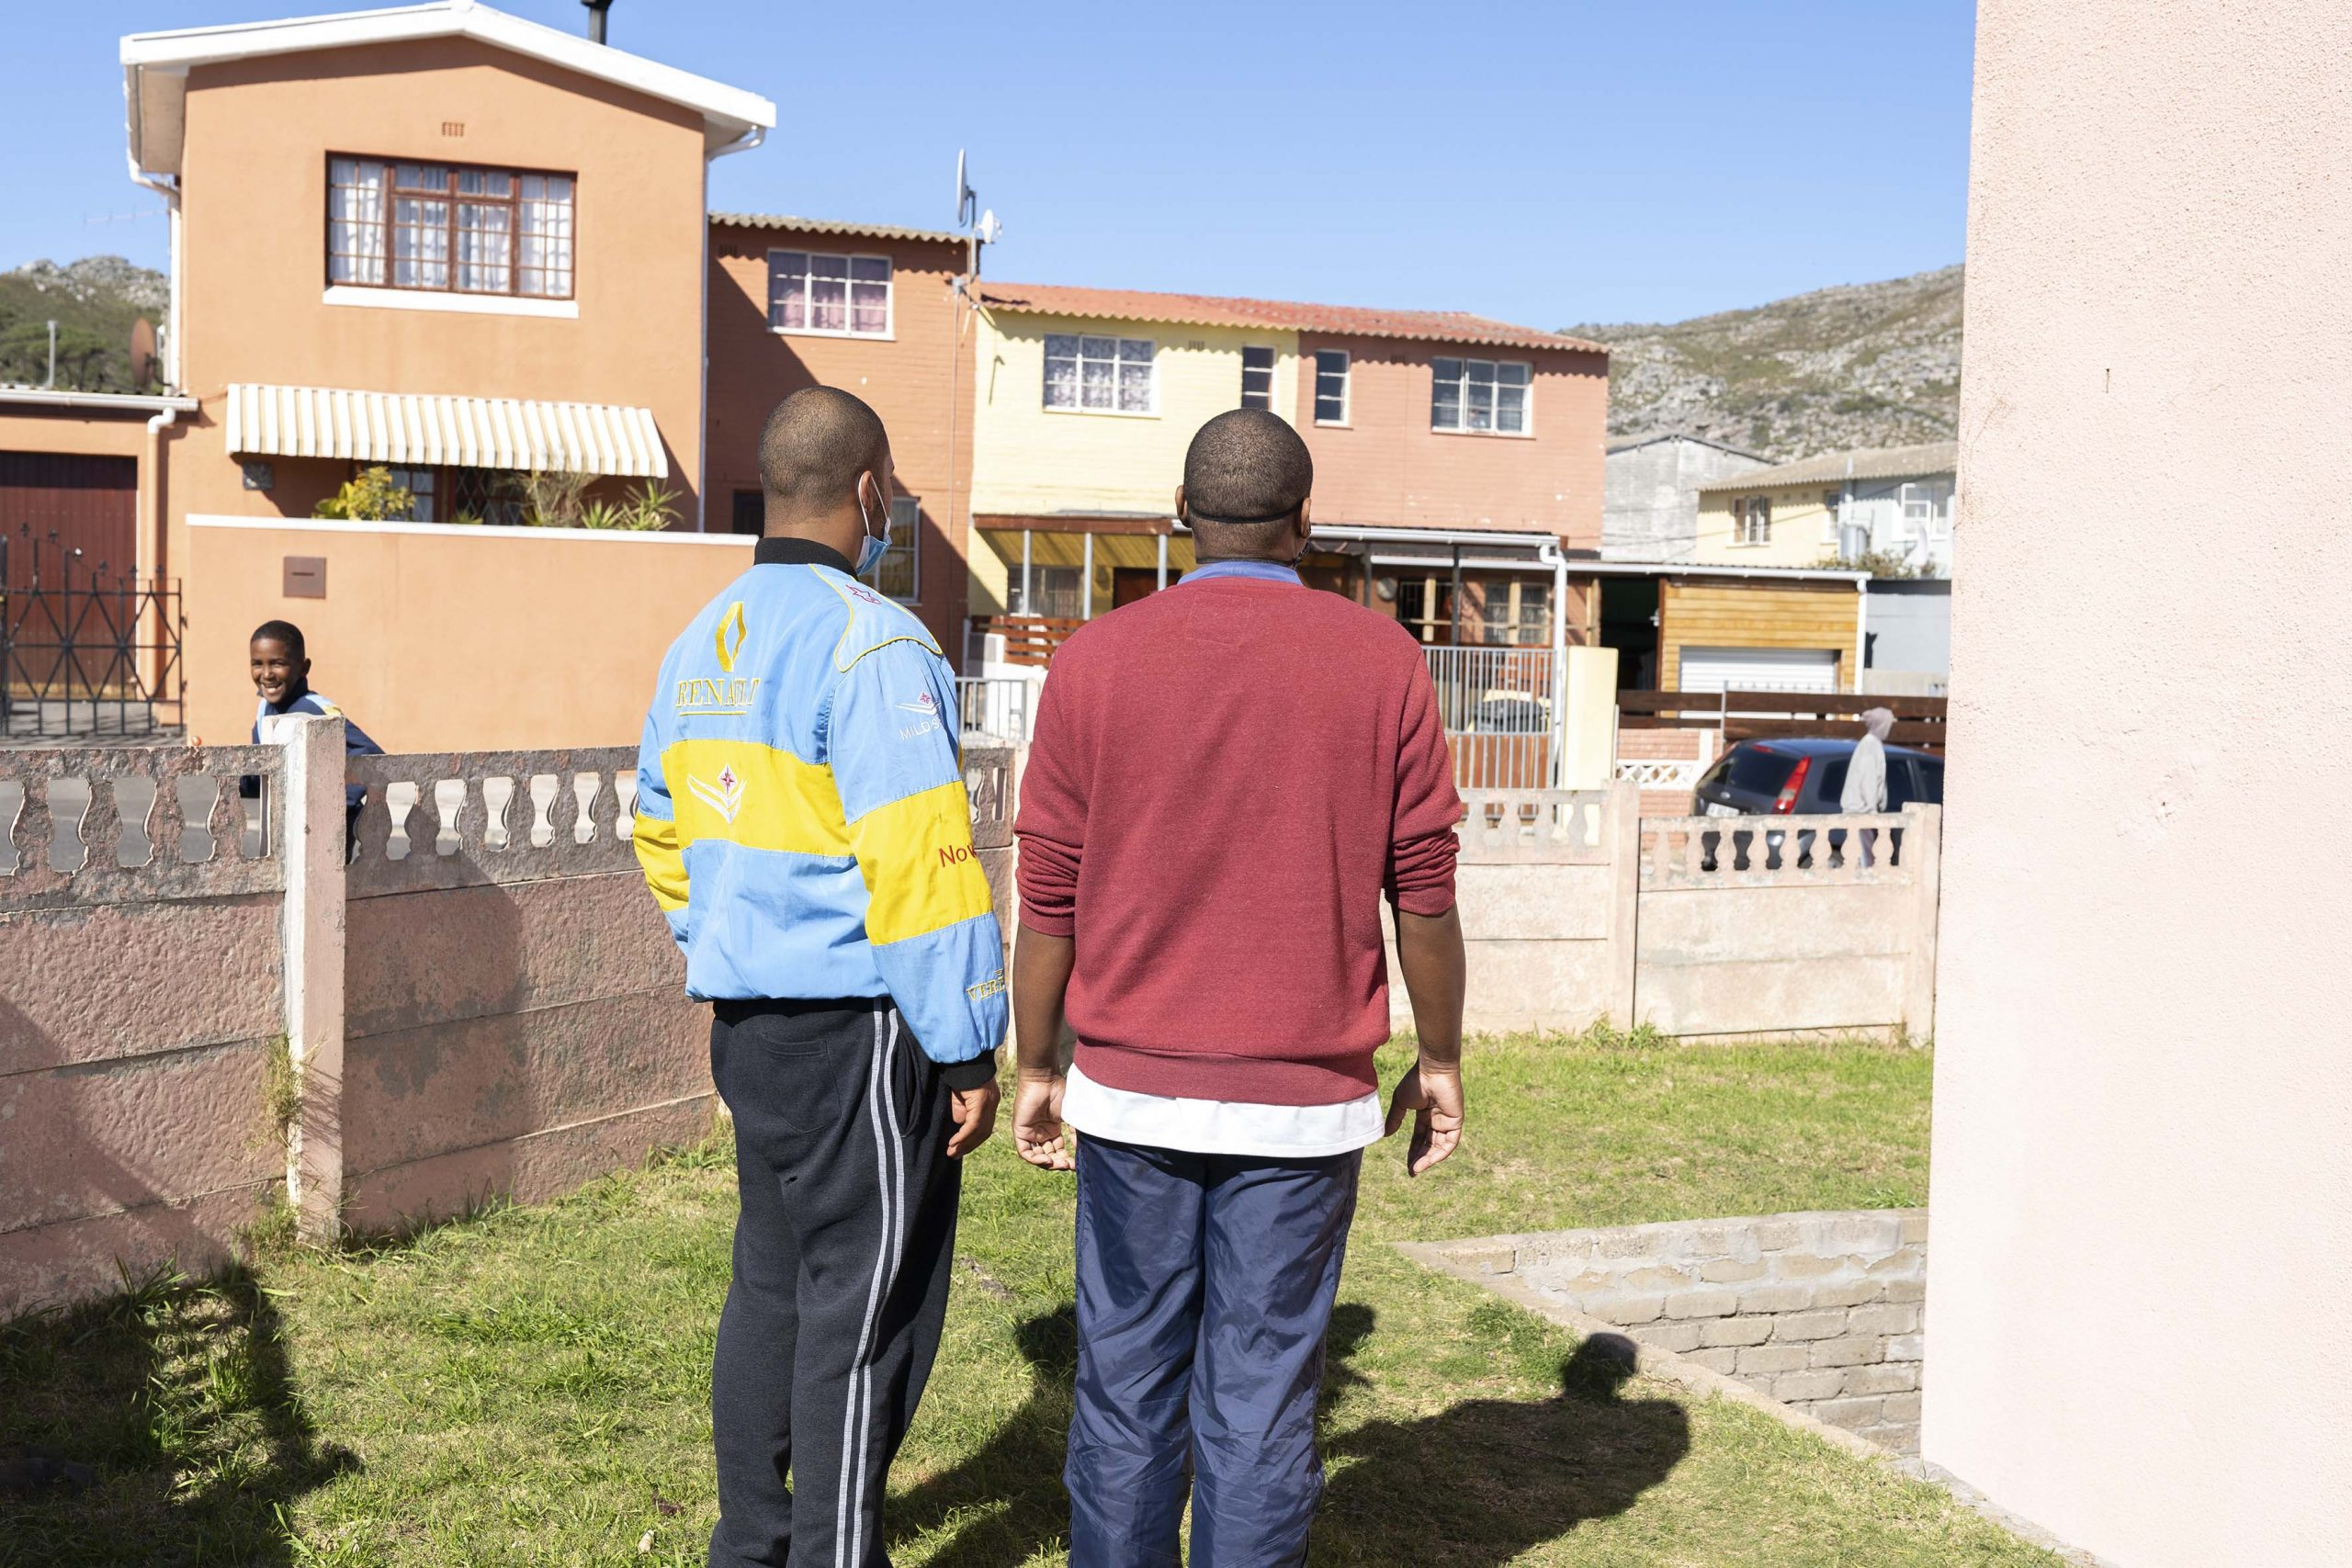 27 July 2020: From left, Eben Collins and Craig Butler investigate a commotion in the street outside the care centre. Butler is Ramona Lamb's cousin and wanted to get involved to help the community. Some of Lamb's neighbours were giving her a hard time about setting up the centre and Butler felt he could help explain to them why she had undertaken the project. Butler is a soccer coach who loves working with people and he used his people skills to win over most of Lamb's neighbours.